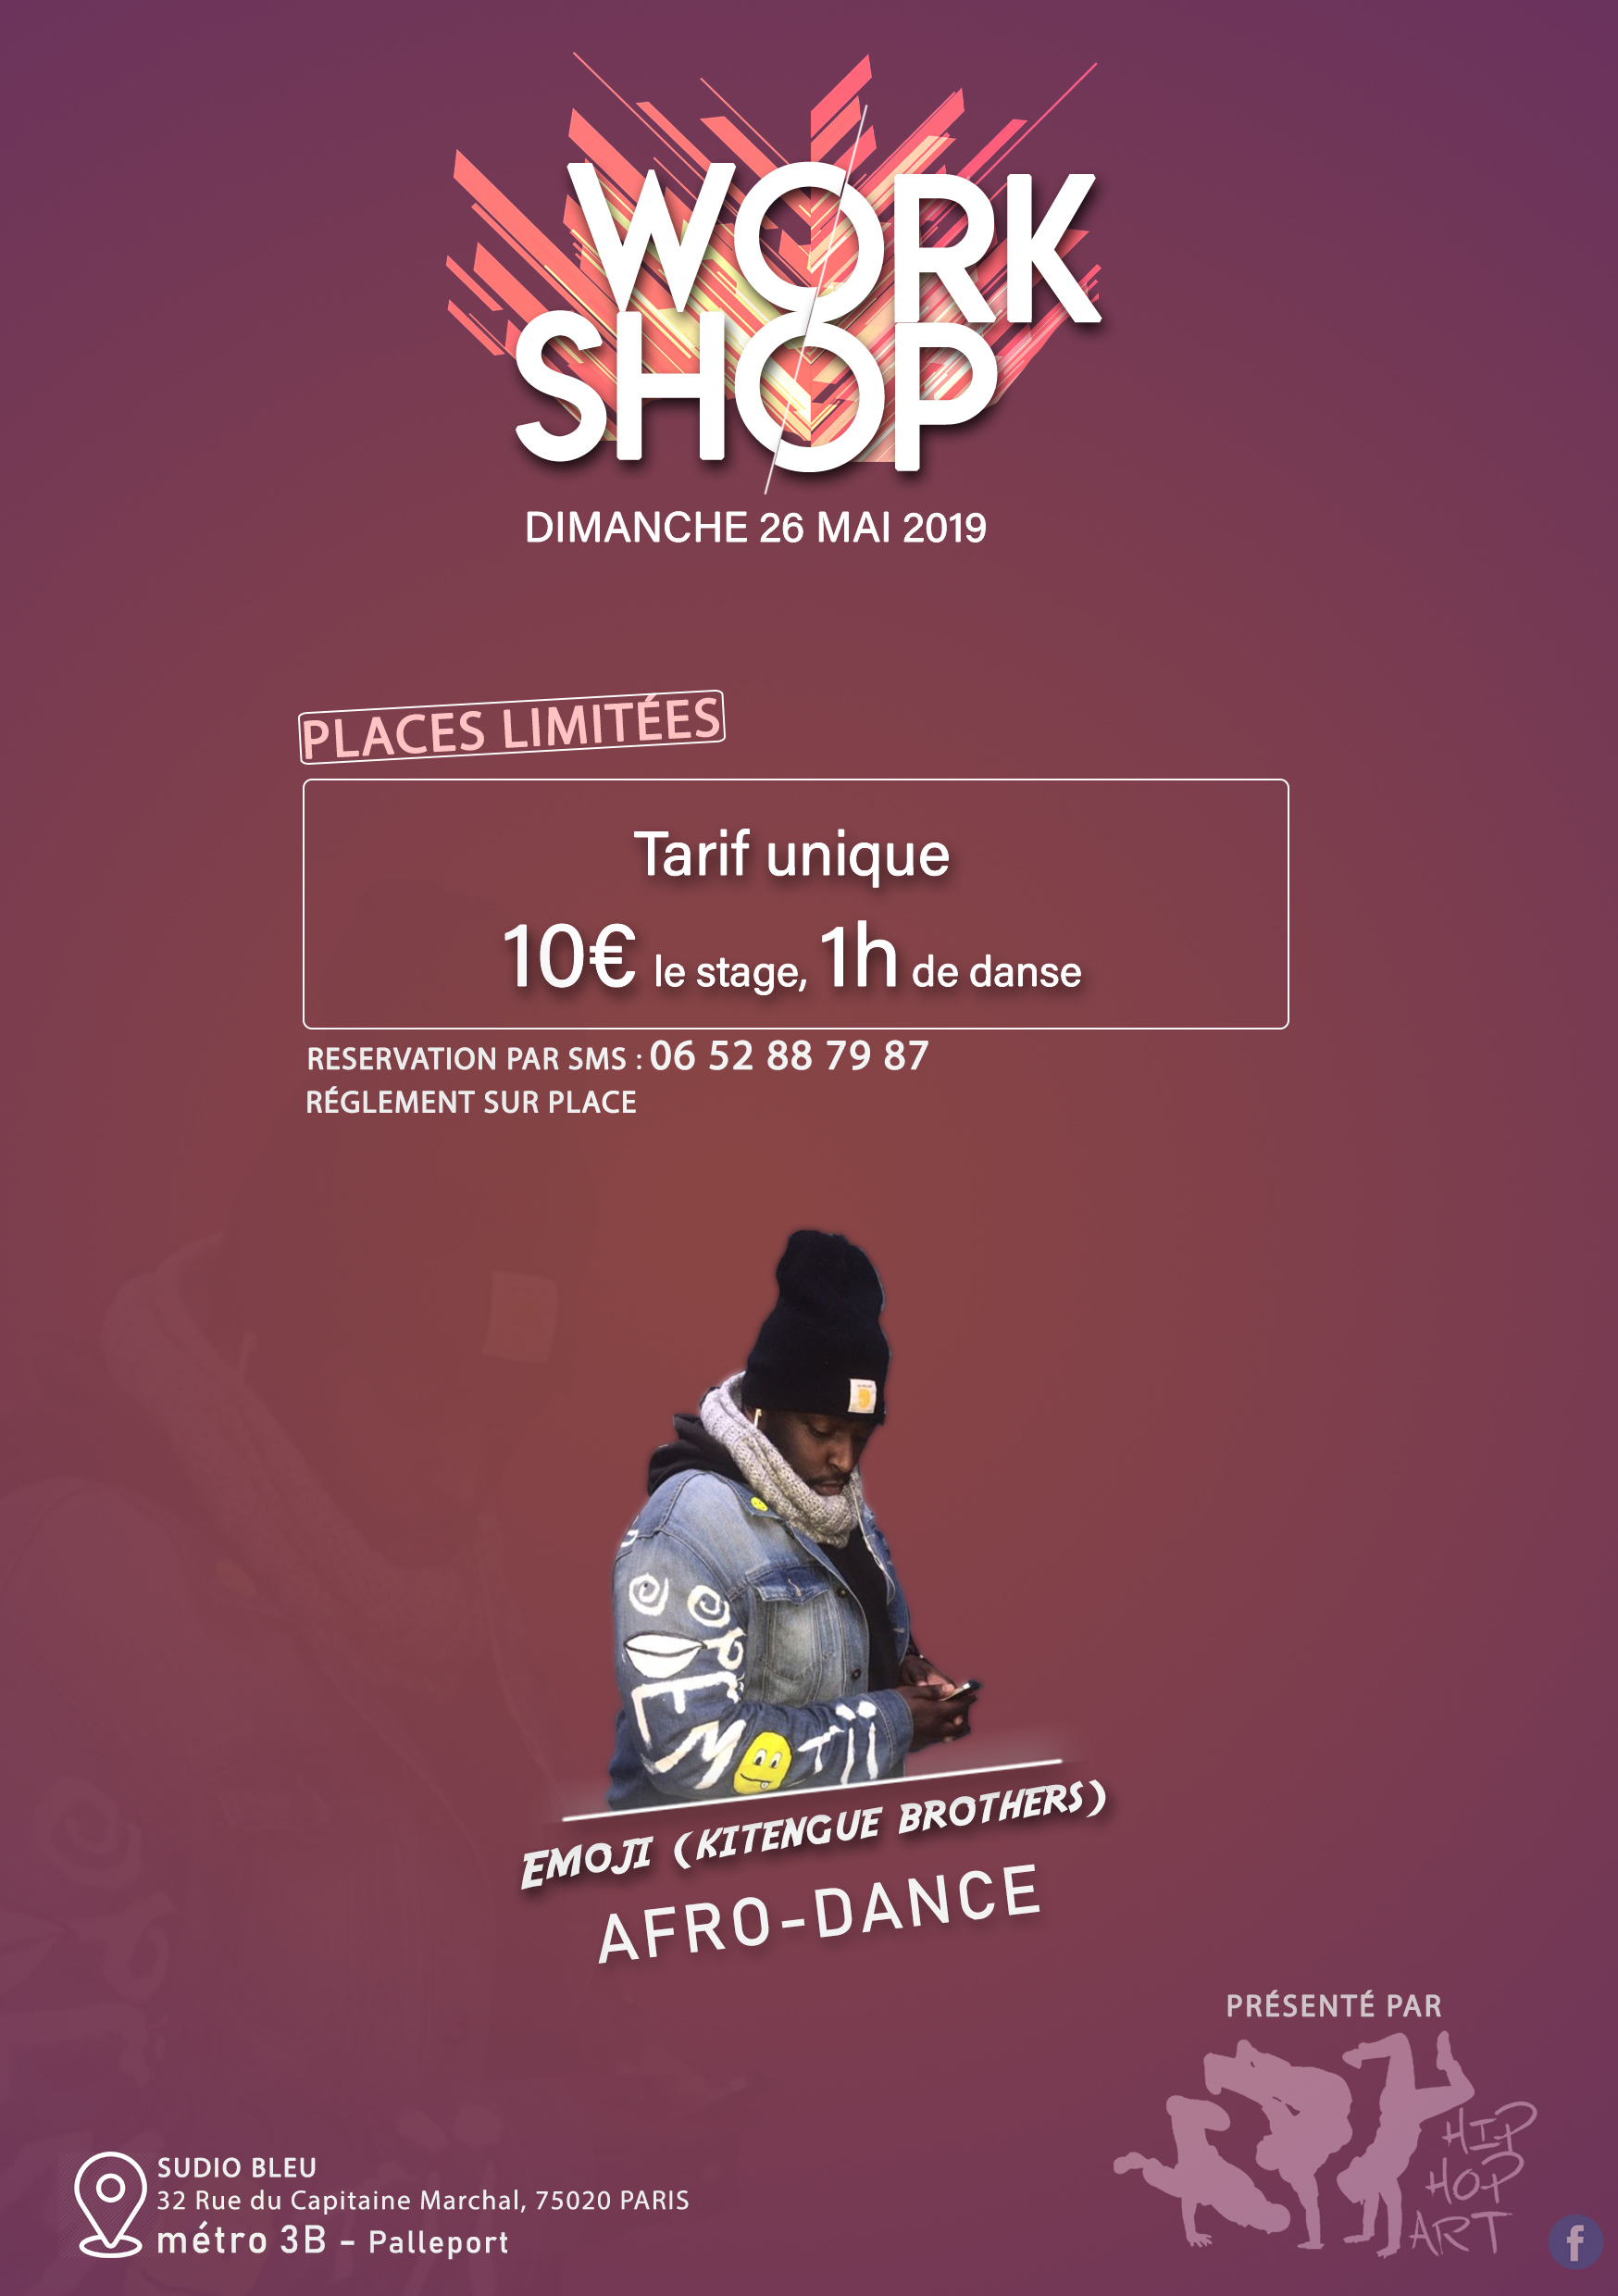 WORKSHOP AFRO DANCE AVEC EMOJI (KITENGUE BROTHERS) - Hip Hop Art